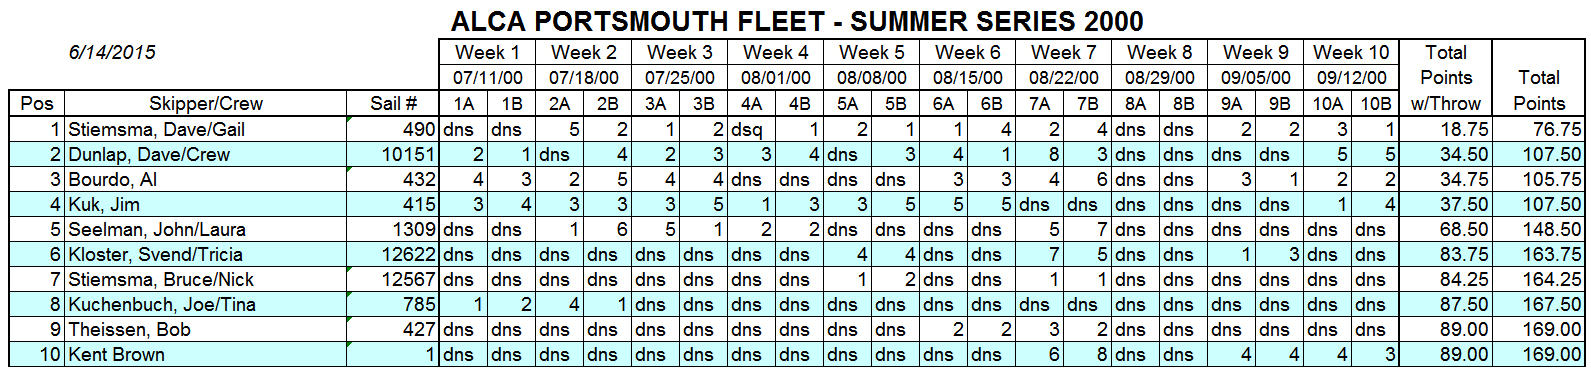 2000 Summer Portsmouth Fleet Results